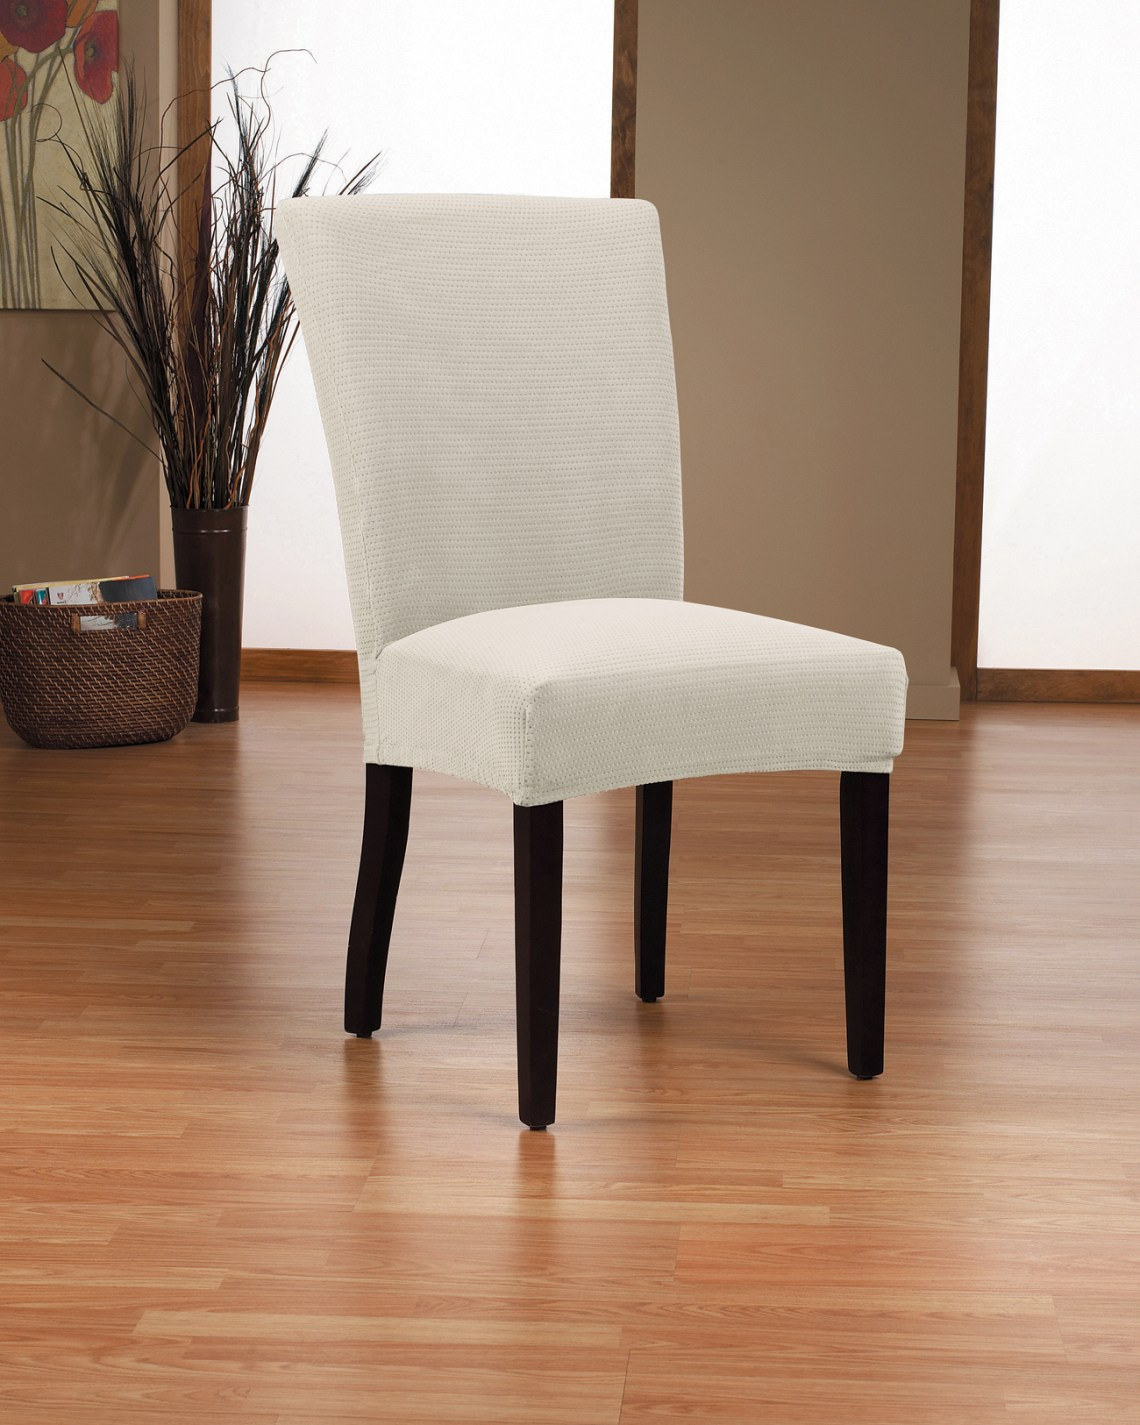 Image Result For Chair Covers For Dining Room Chairs With Rounded Back